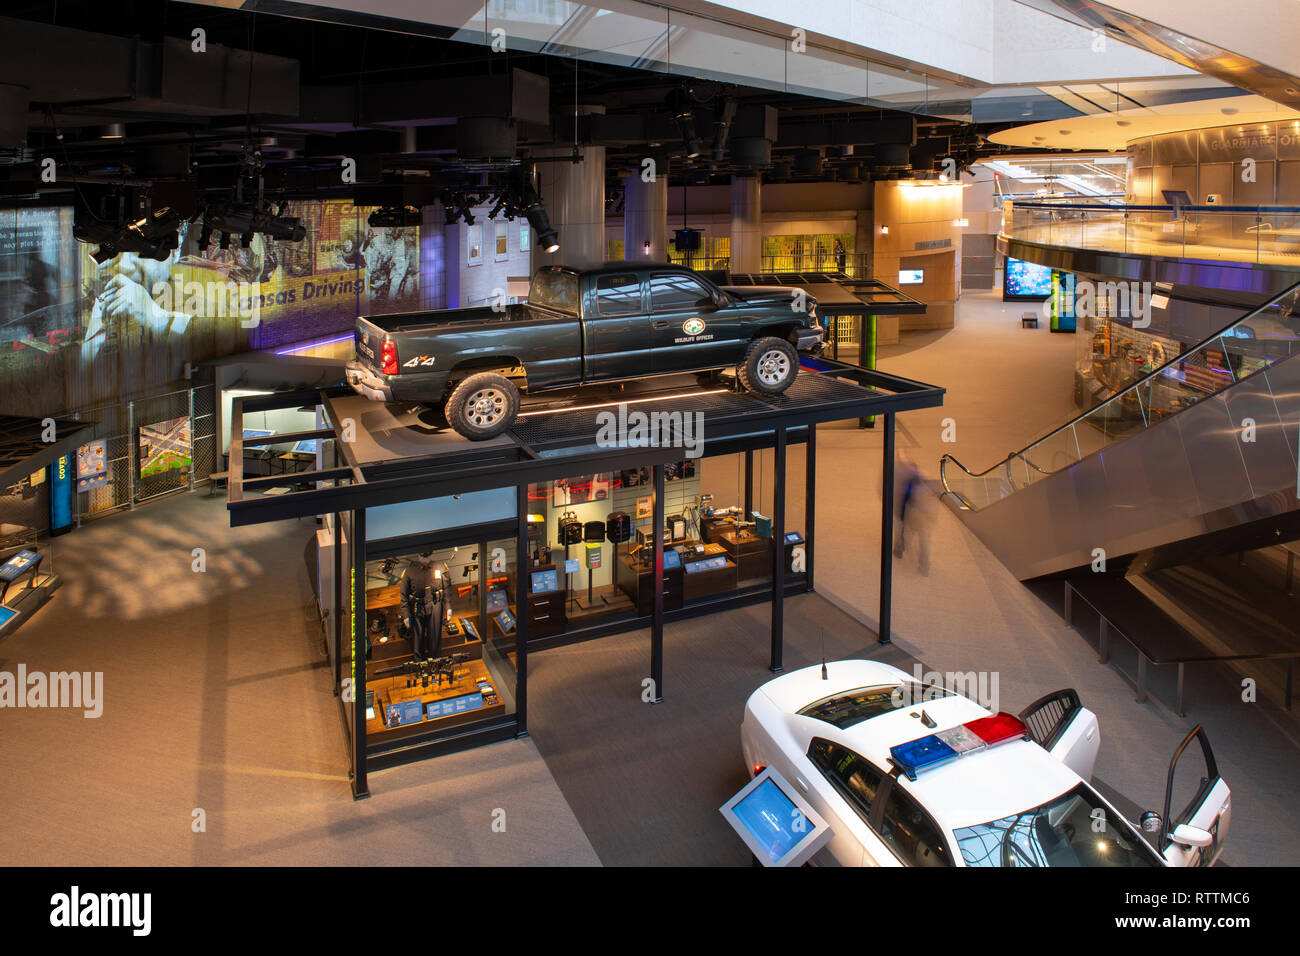 usa-washington-dc-national-law-enforcement-museum-interior-RTTMC6.jpg